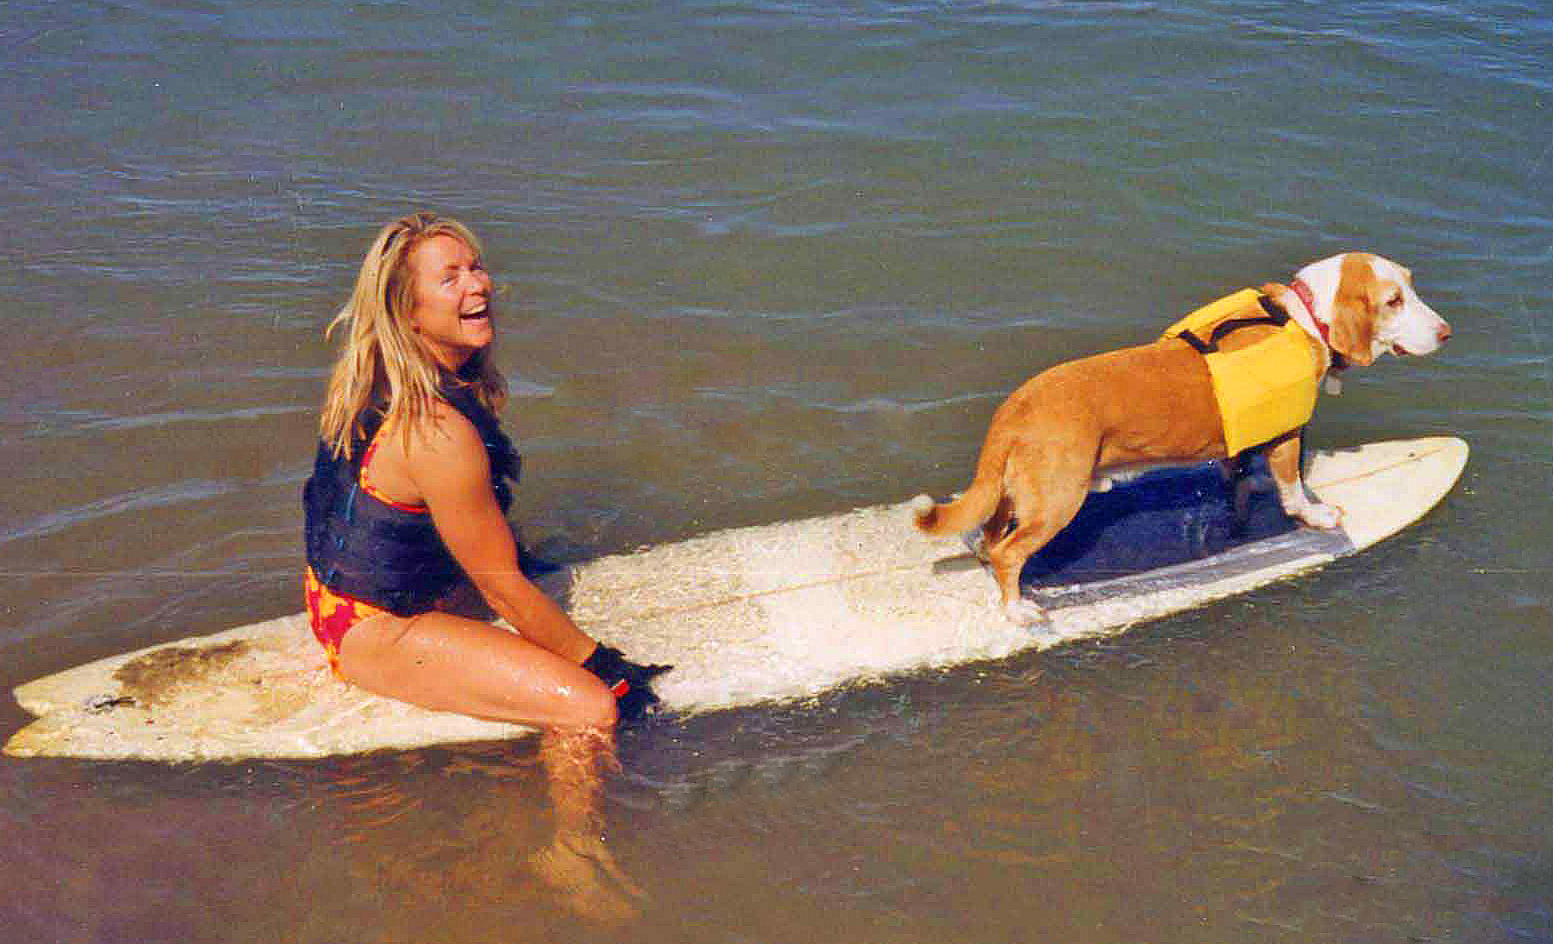 Howdy and me, surfing on the Colorado River, circa 2002.   Photo: (c) Barb Ayers, DogDiary.org